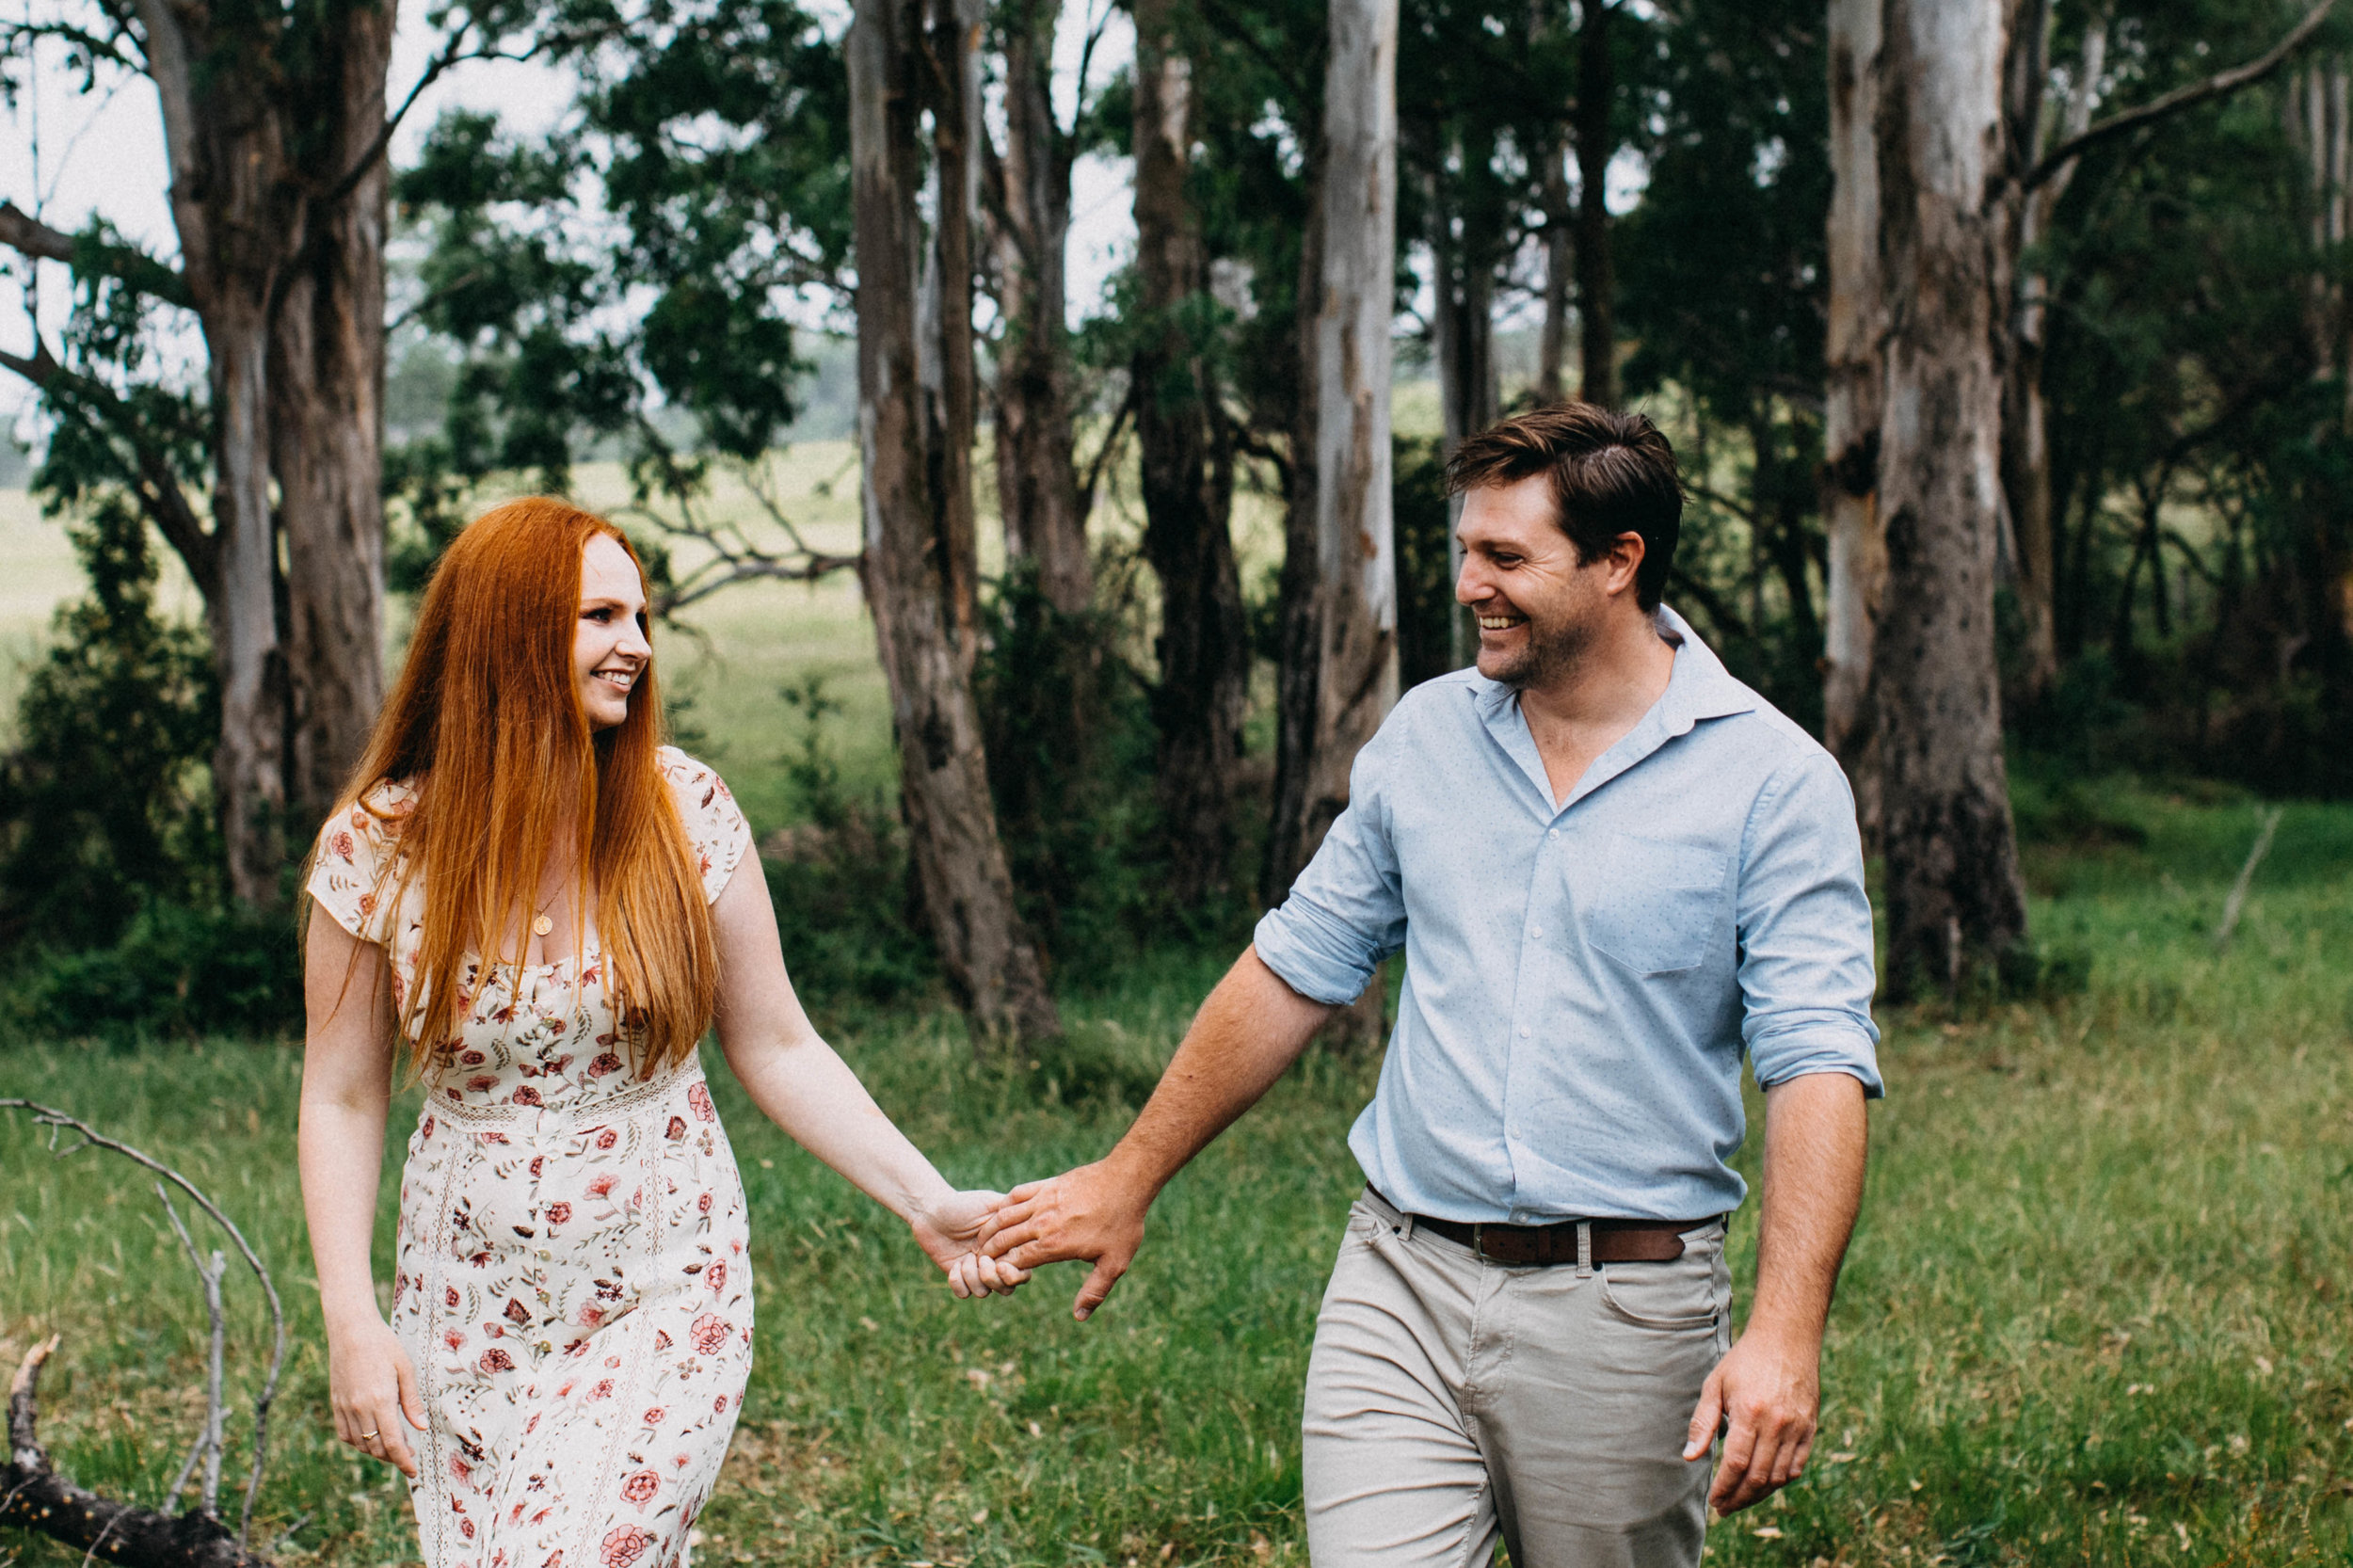 camden-engagement-session-wollondilly-photography-nadine-bernard-31.jpg